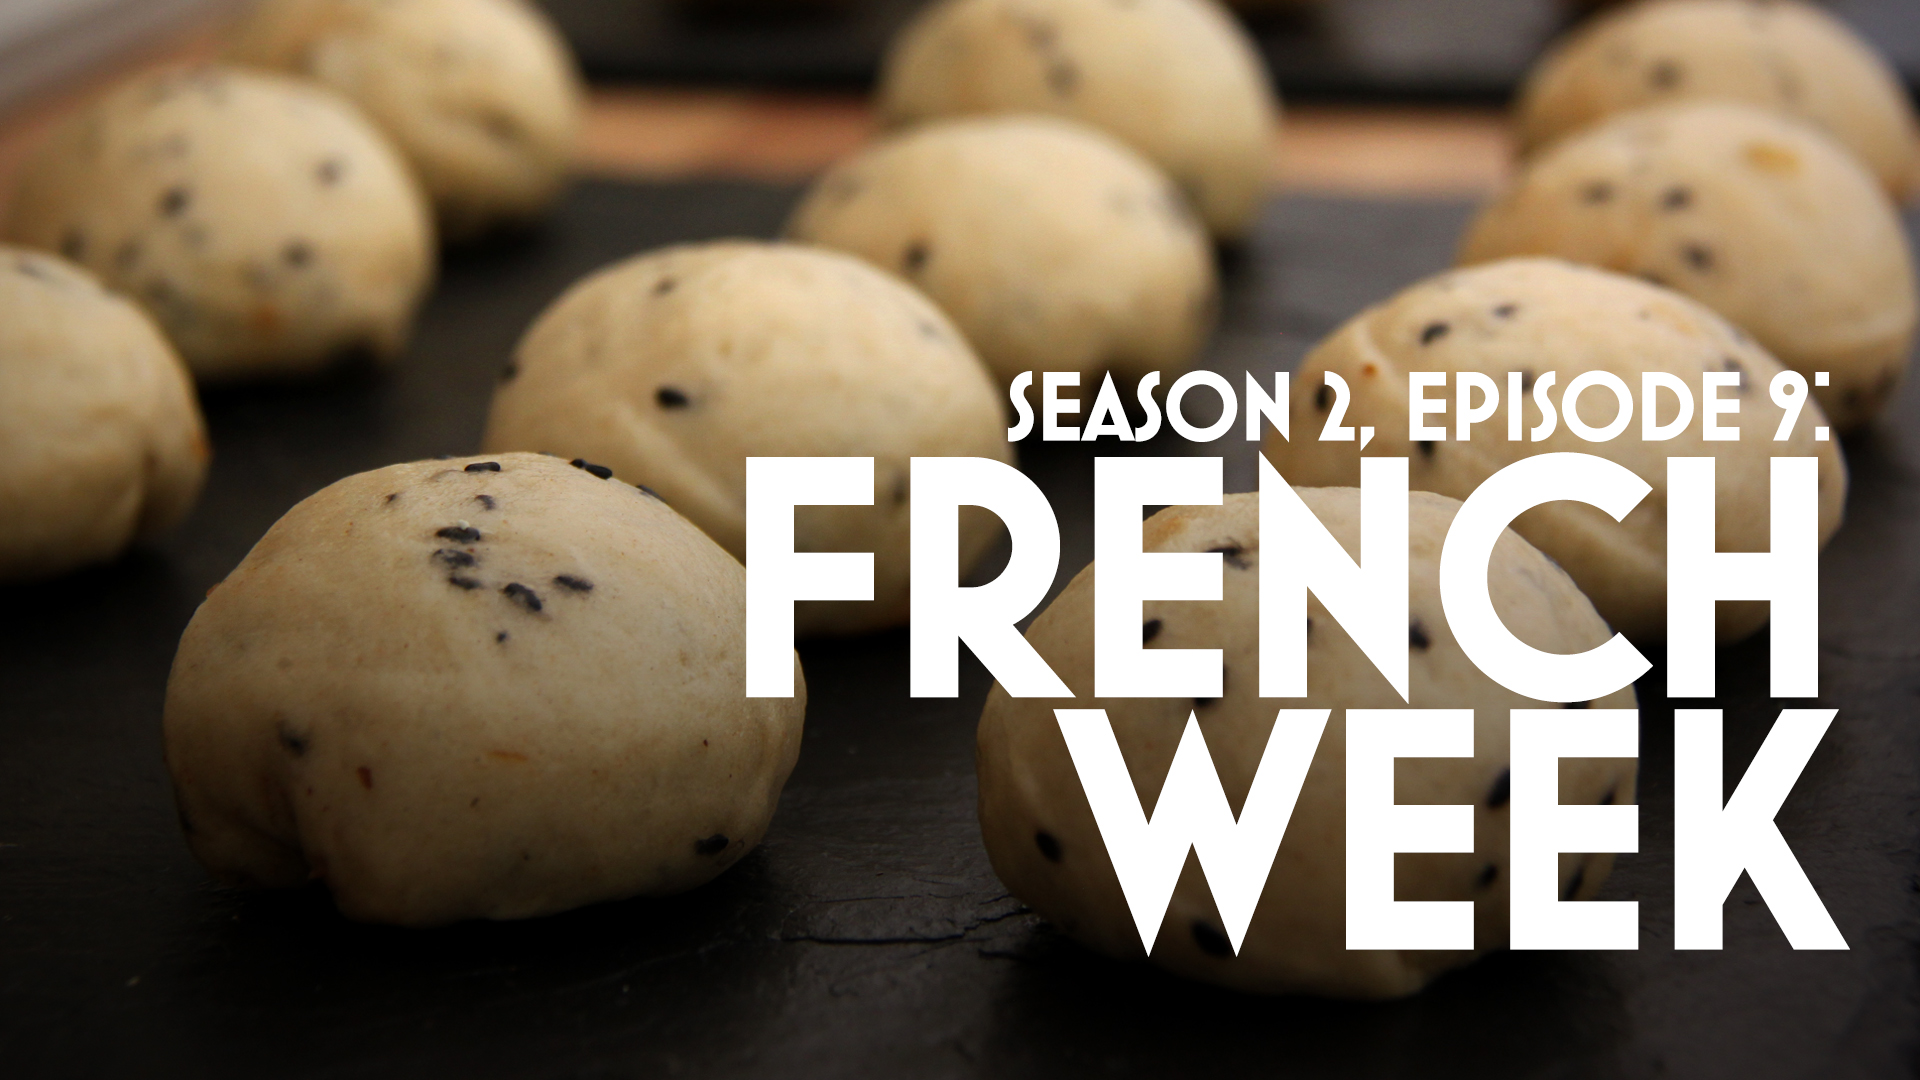 Episode 9: French Week